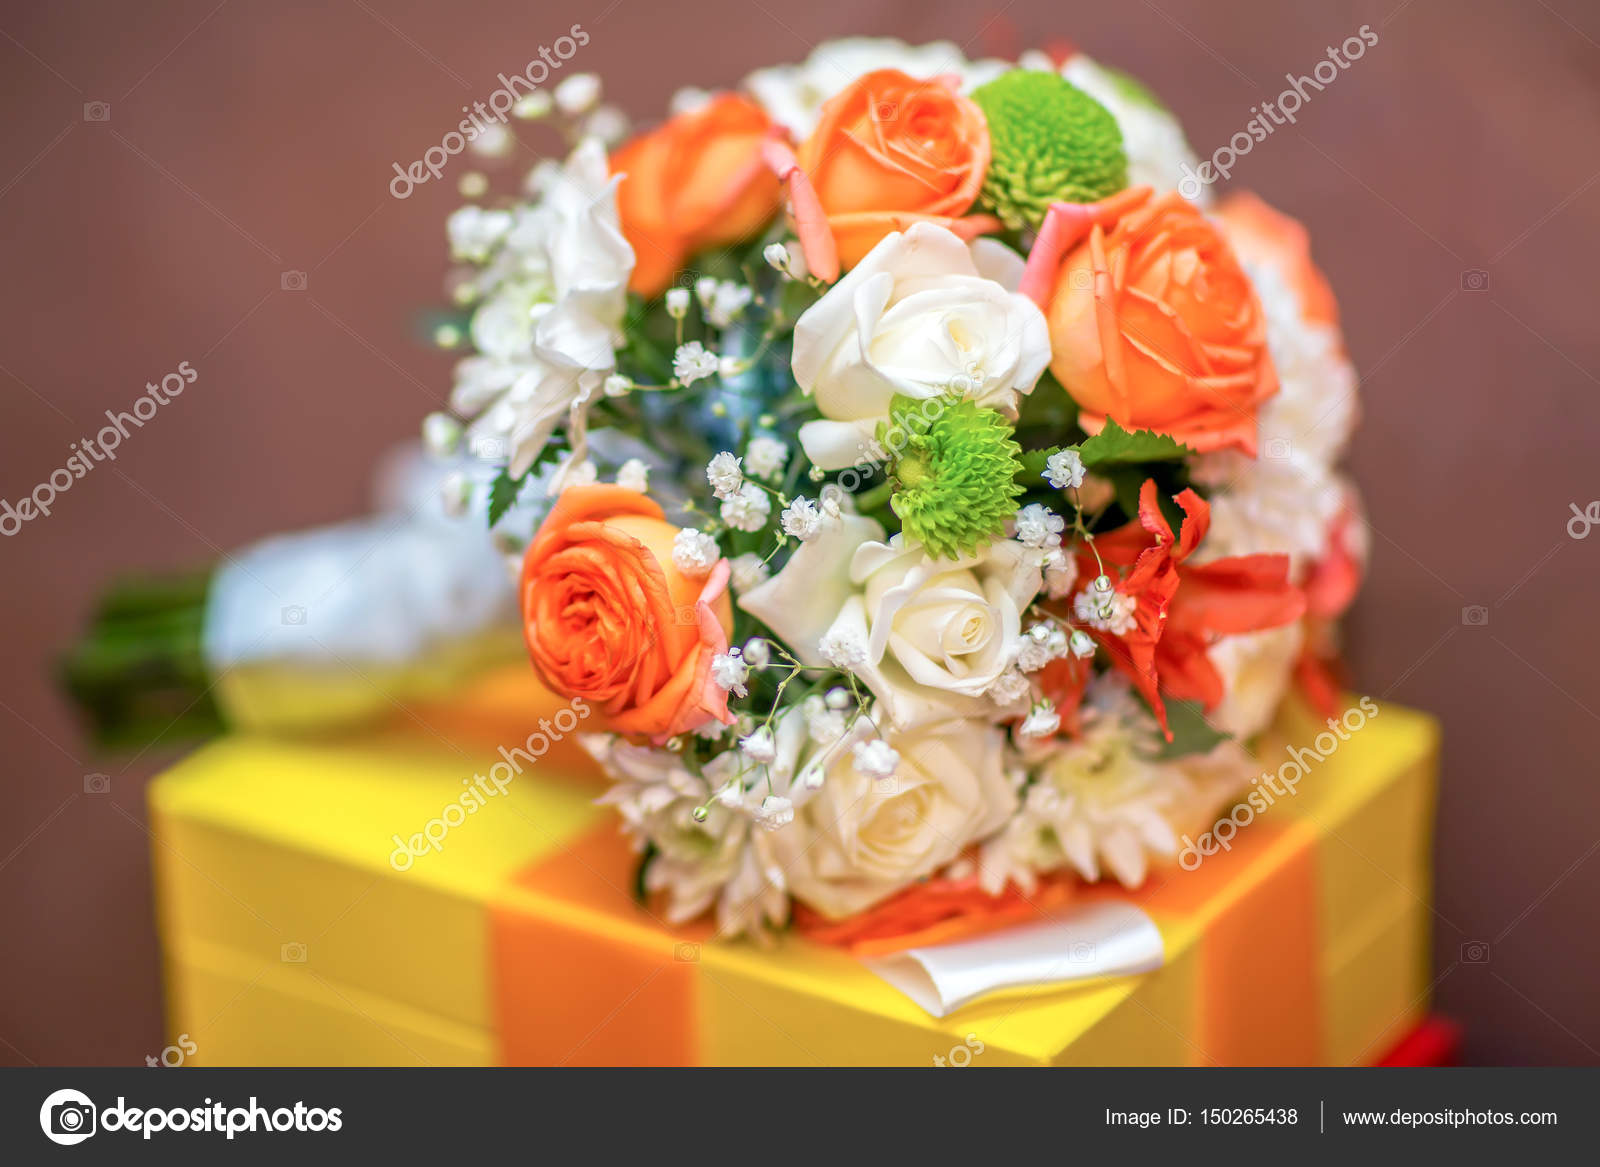 Wedding Bouquet Of Bride Colorful Flowers Orange And White Roses